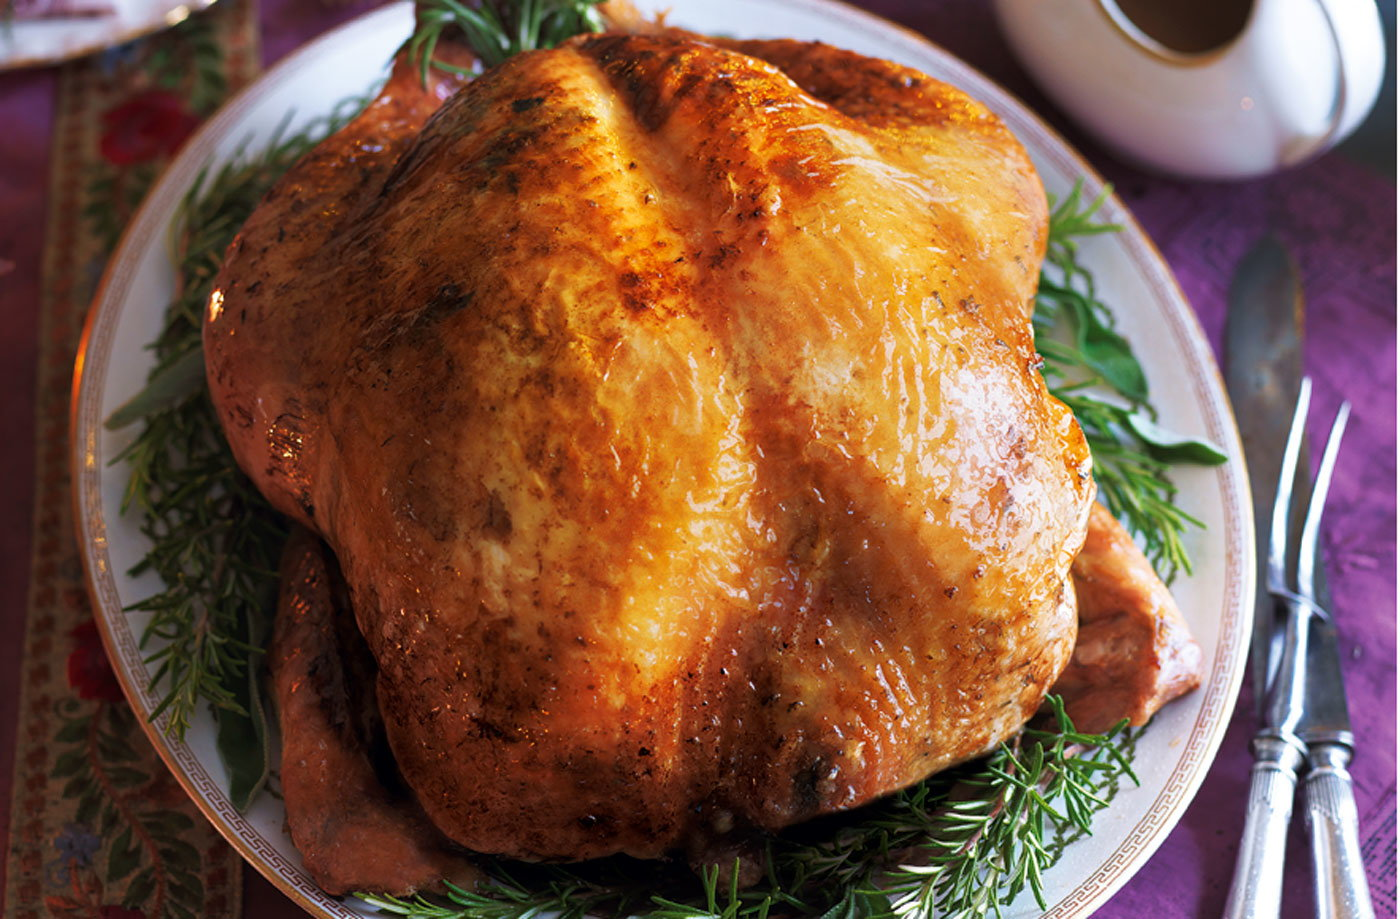 Roast turkey with rosemary butter and Marsala gravy